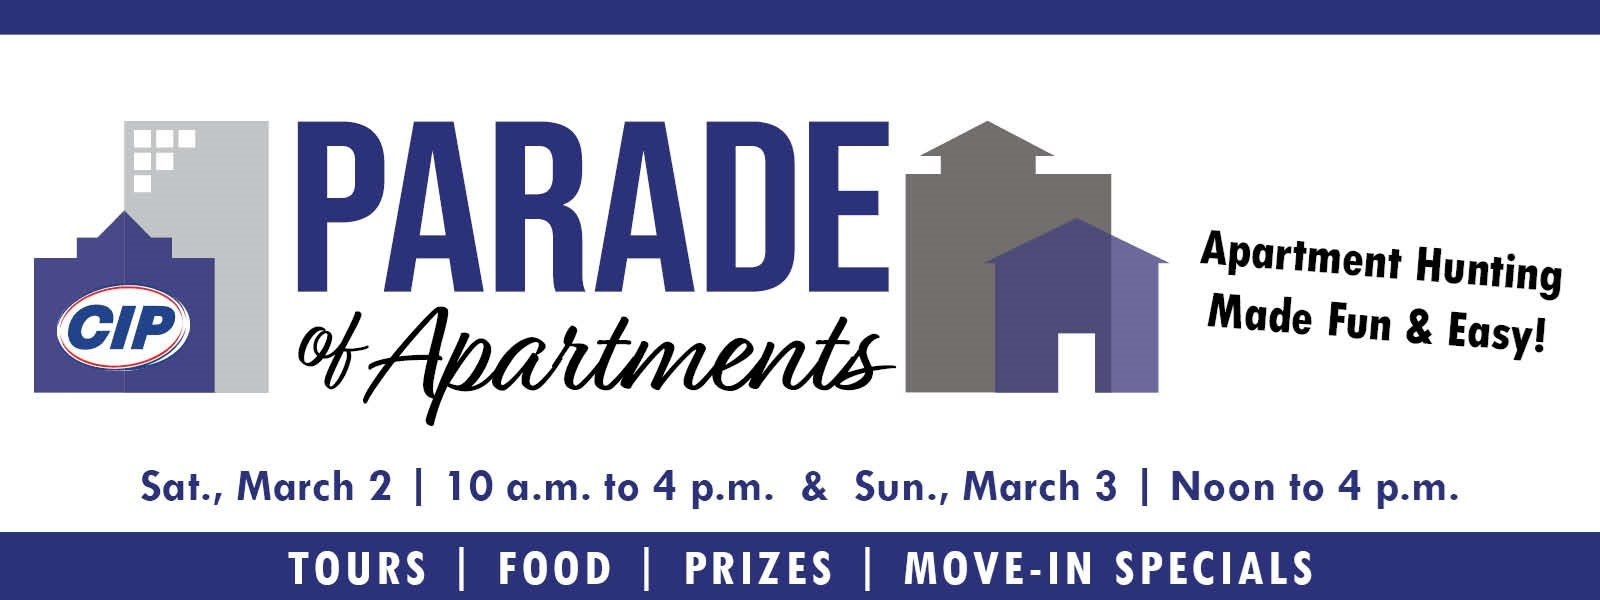 2019 CIP Parade of Apartments